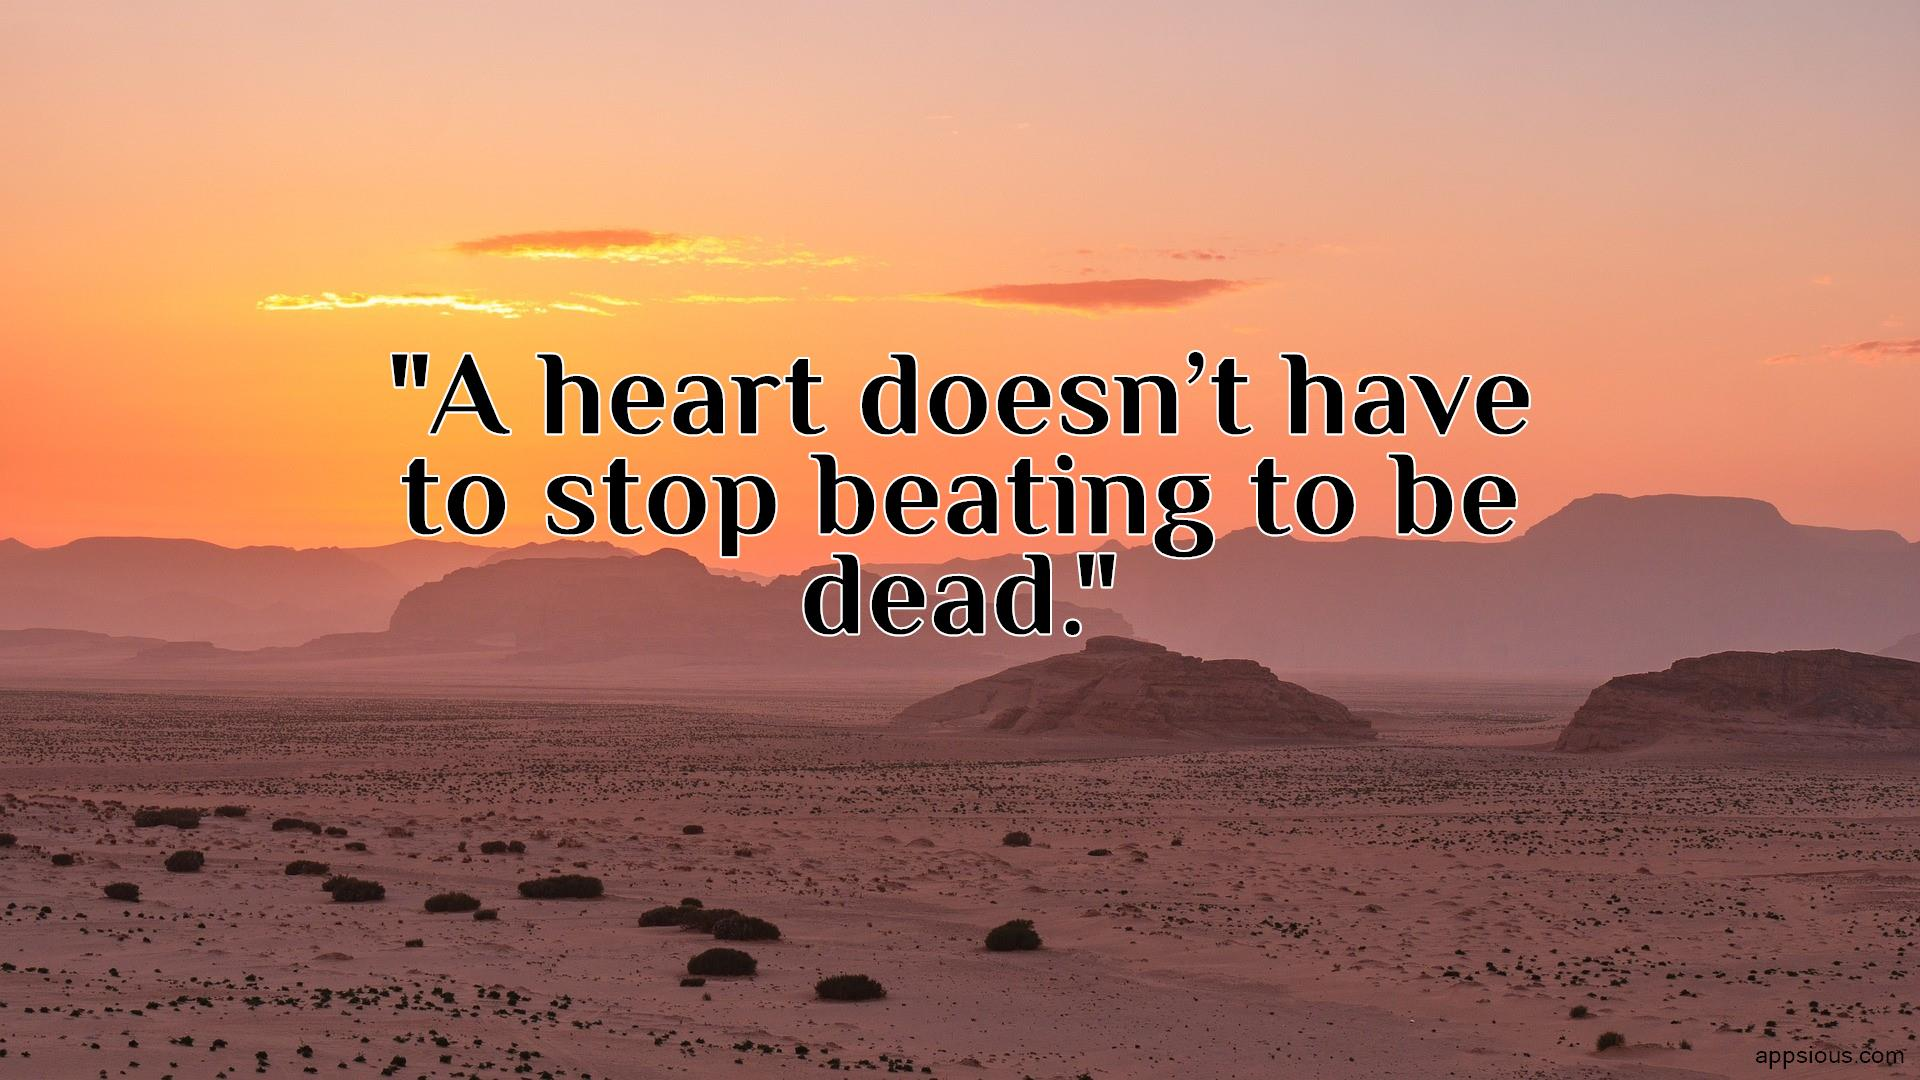 A heart doesn't have to stop beating to be dead.